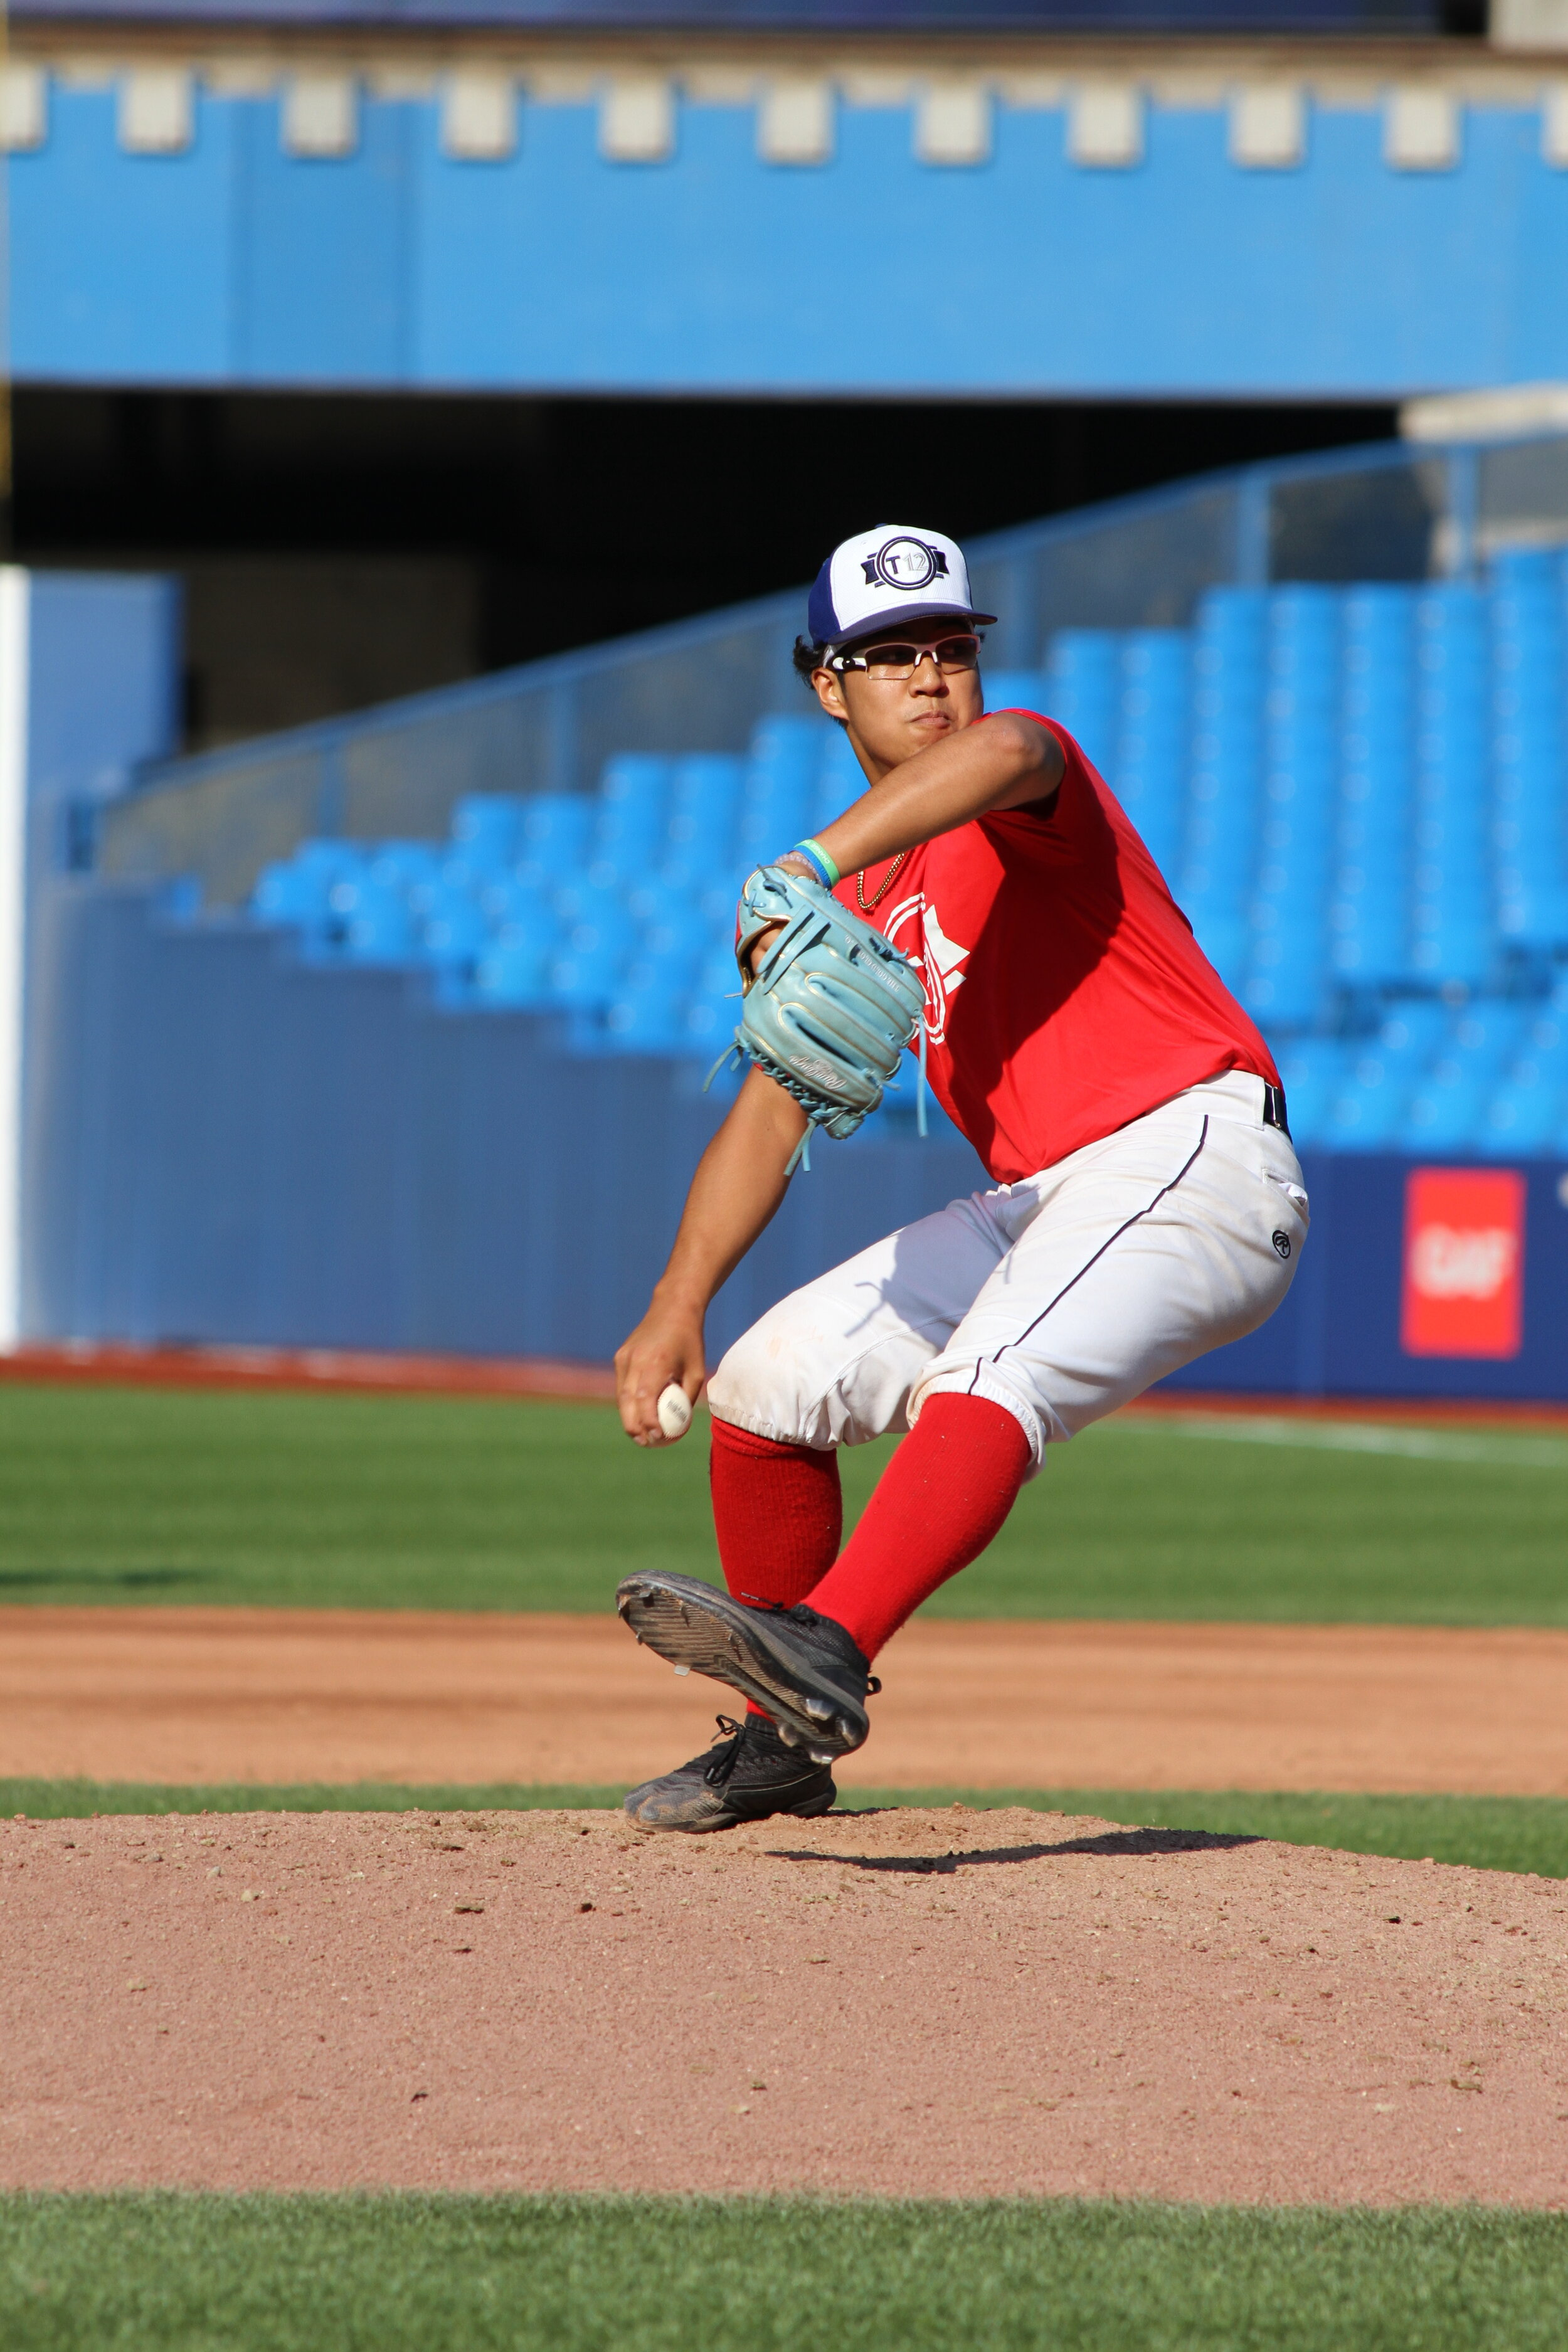 UBC Thunder RHP Vicarte Domingo (Vancouver, B.C.) threw a total of three scoreless innings in his T12 debut, allowing three hits and a walk while striking out five. Photo: J.P. Antonacci